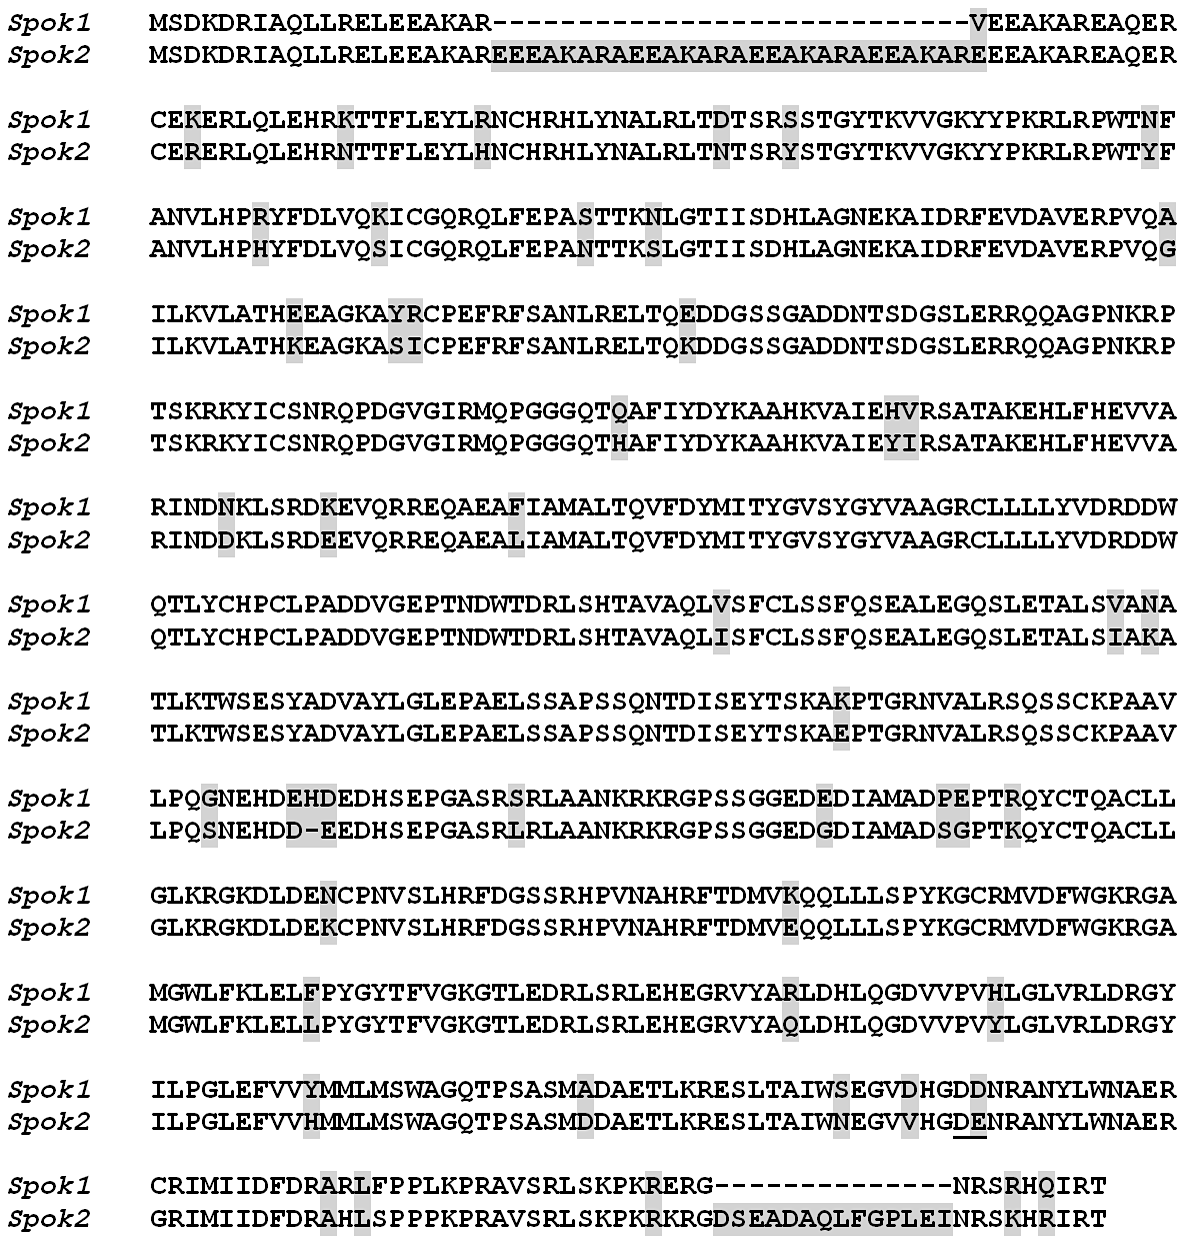 Comparison of Spok1 and Spok2 protein sequences.